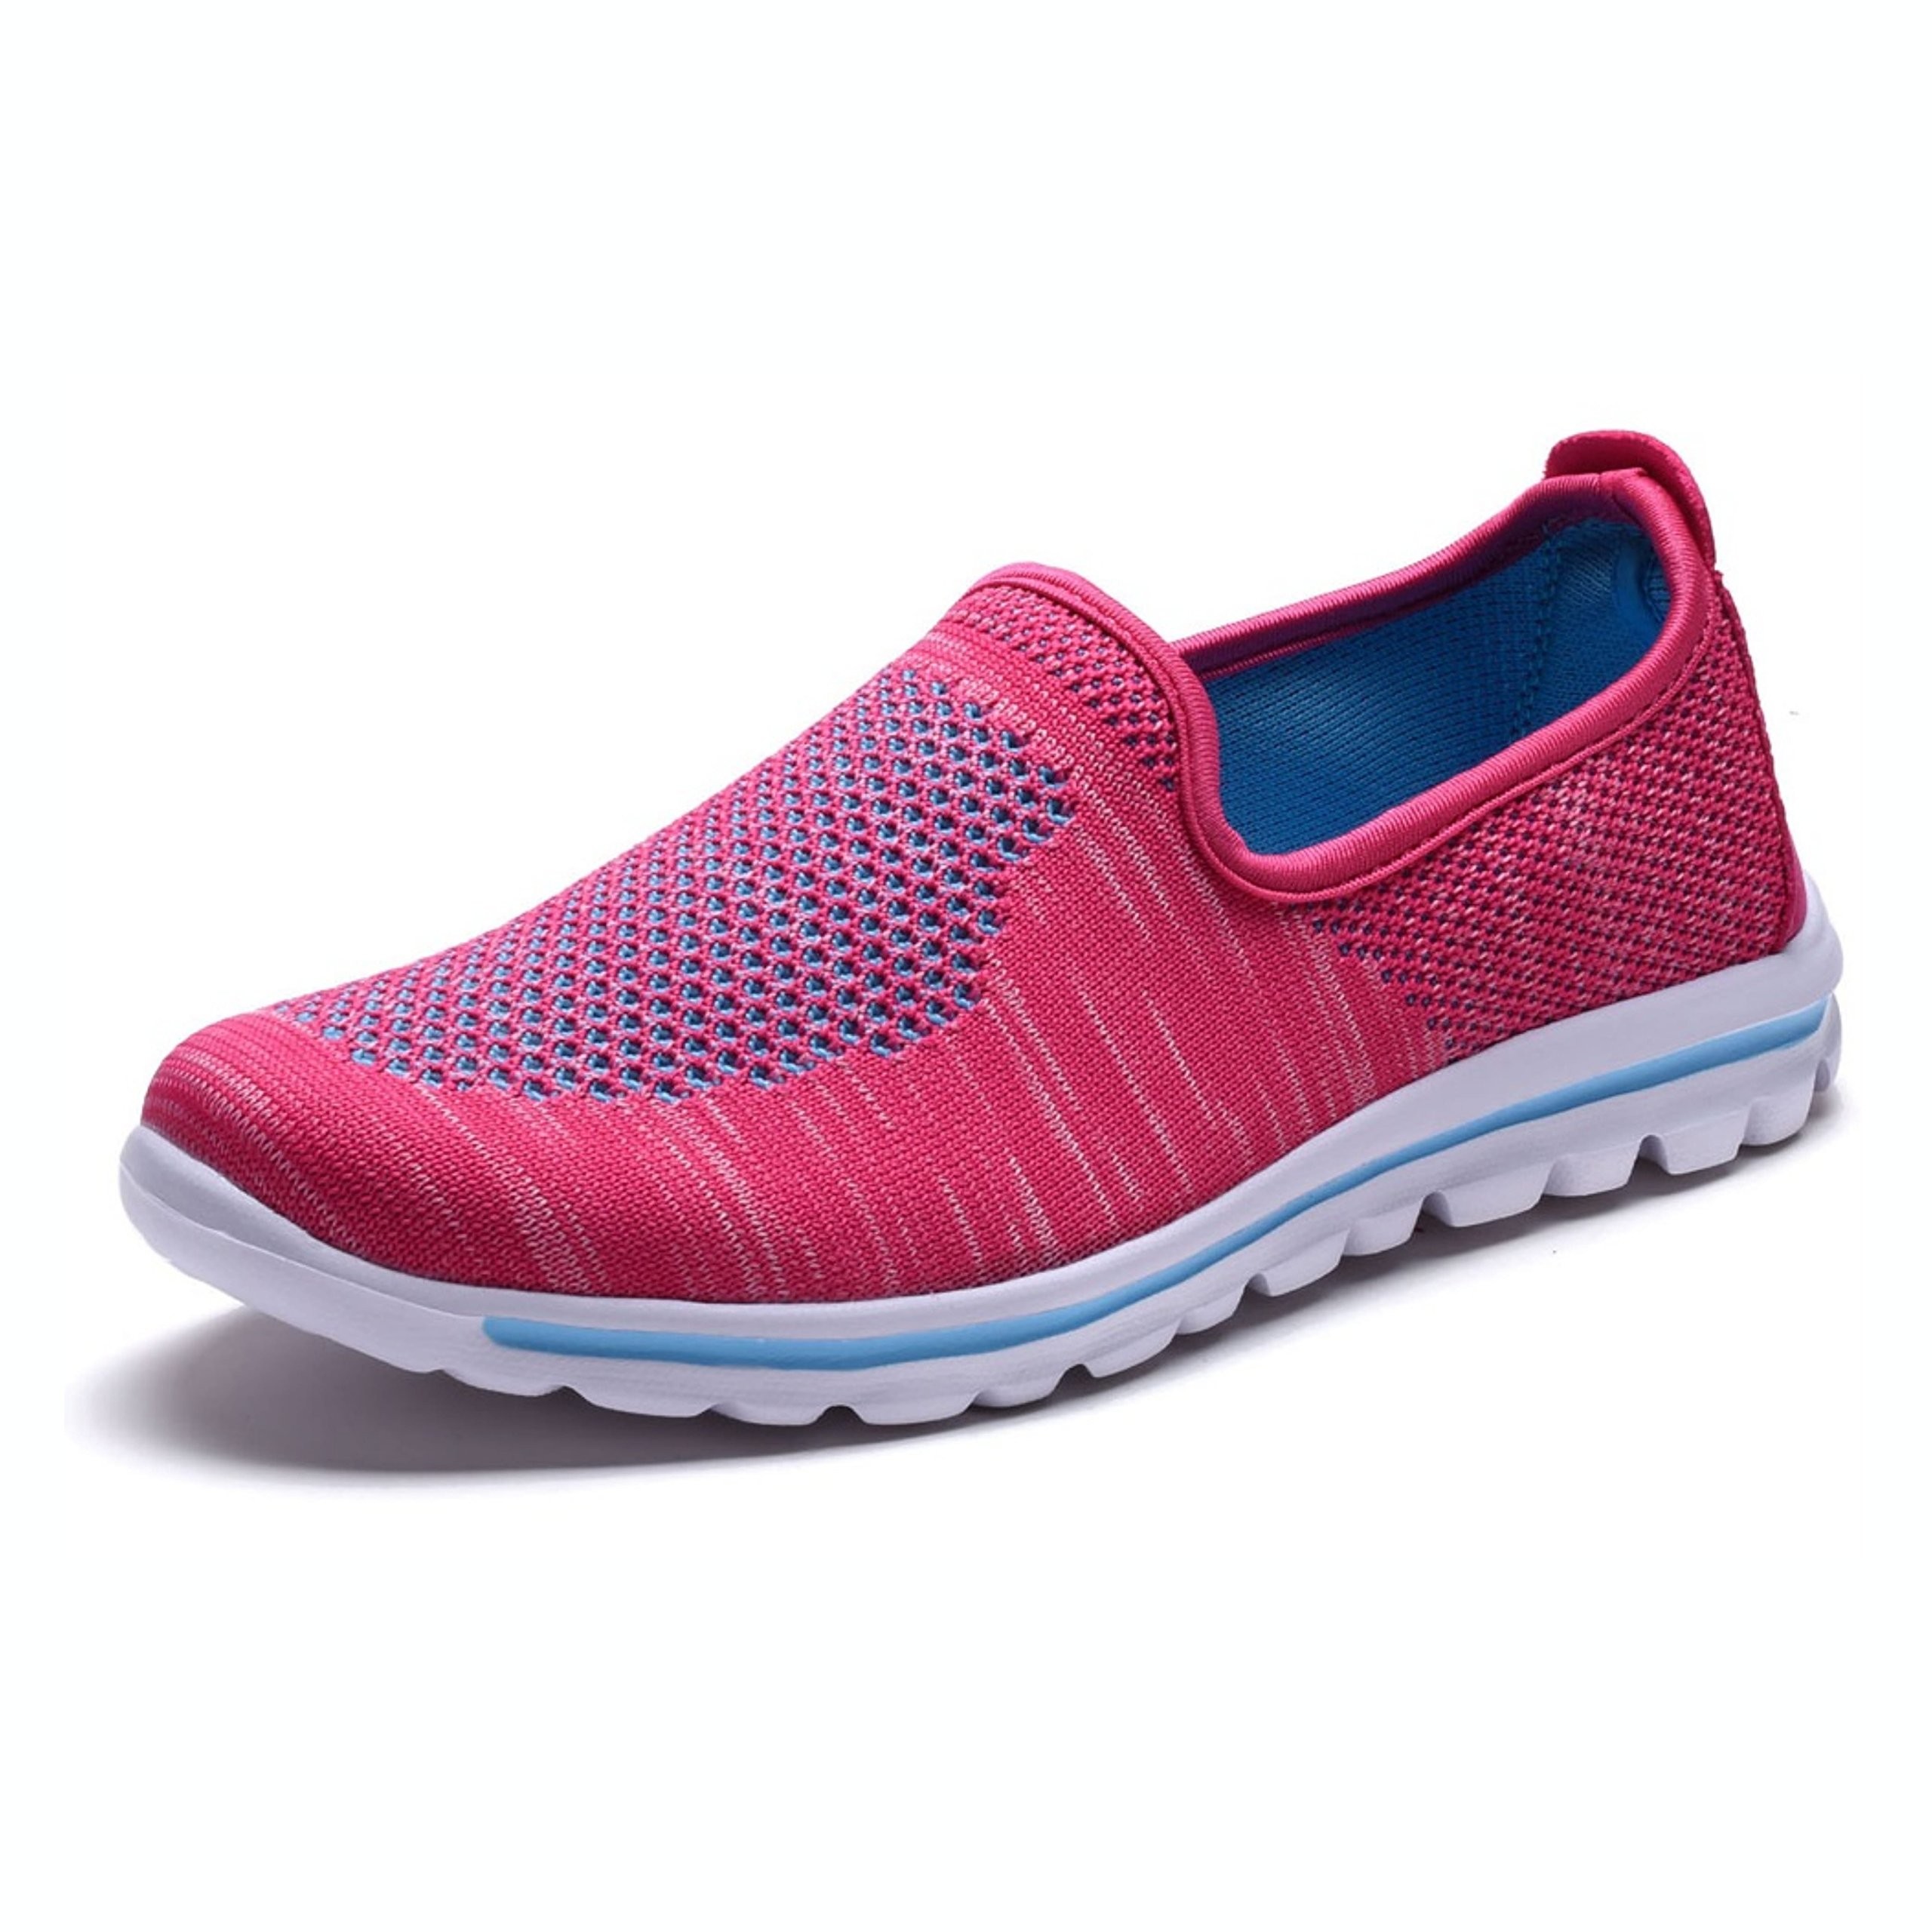 DailyShoes Women's Fit Mesh Slip-on Style Walking Shoes with Memory Foam Insoles- Breathable Mesh - Durable Soles - Reliable Traction - Perfect for Walks and Jogs, Fuchsia Mesh, 8.5 B(M) US